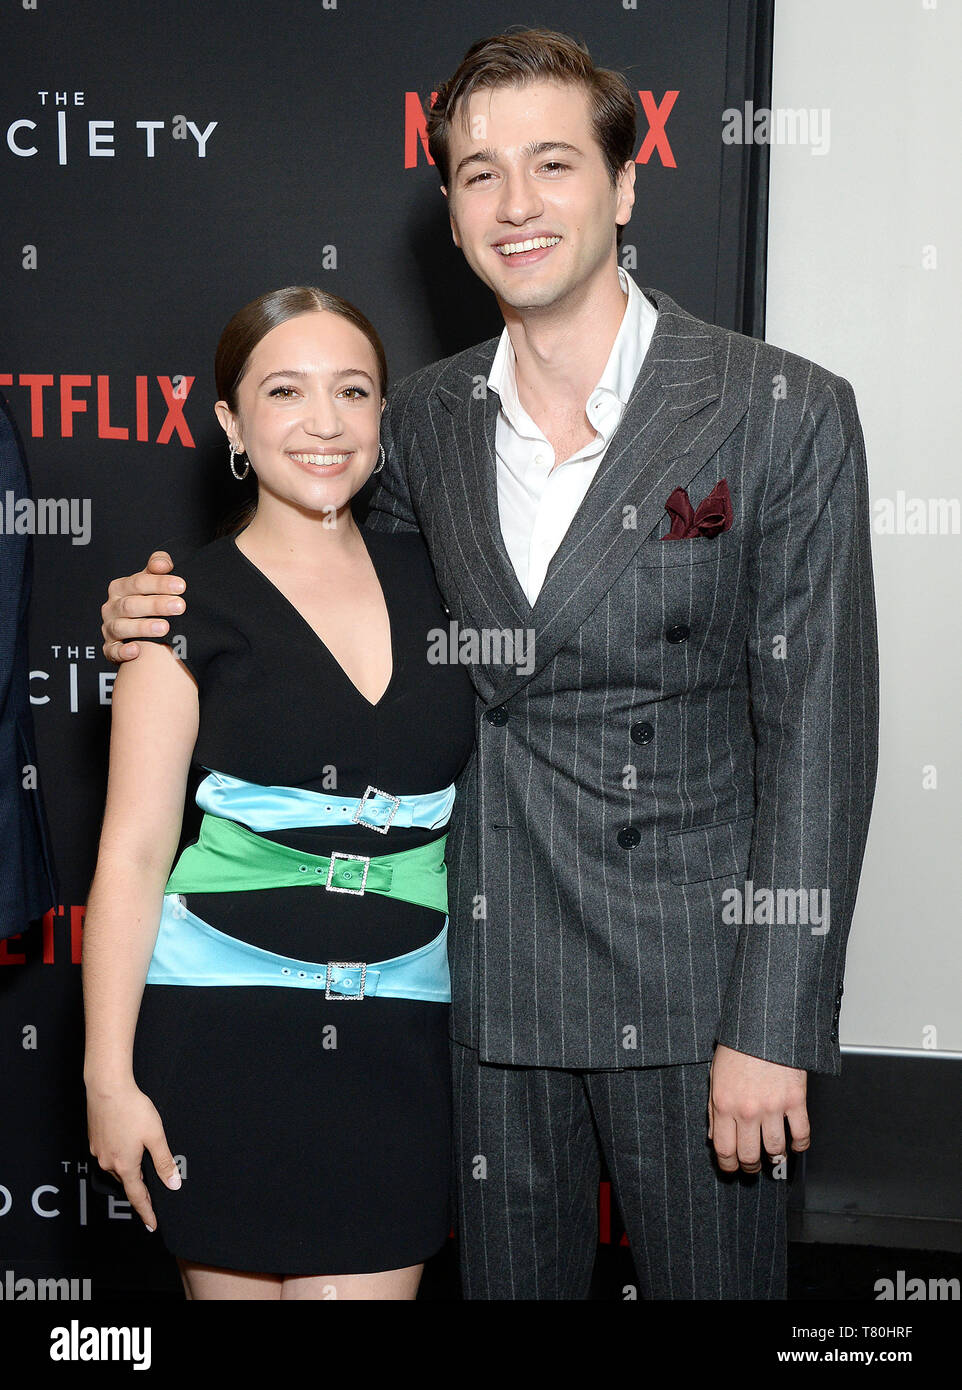 Los Angeles, California, USA. 09th May, 2019. Pictured: Alex Fitzalan, Gideon Adlon Netflix - The Society Season 1 Premiere - Arrivals 5/9/19, Los Angeles, California, United States of America Credit: Broadimage Entertainment/Alamy Live News - Stock Image